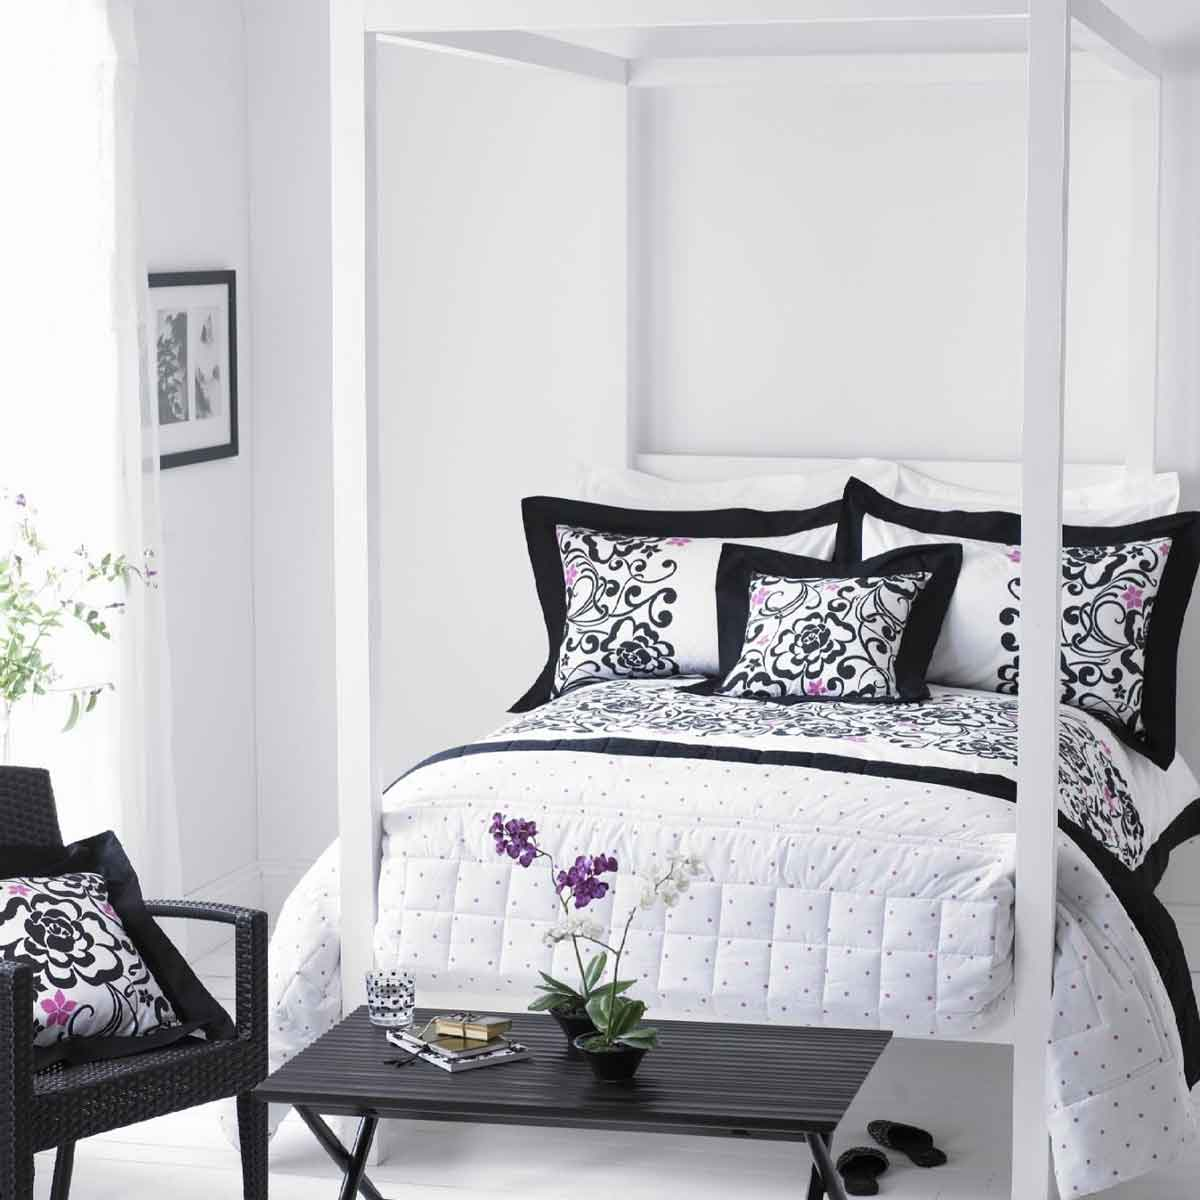 Black and white bedroom decorating ideas dream house for Idea bedroom